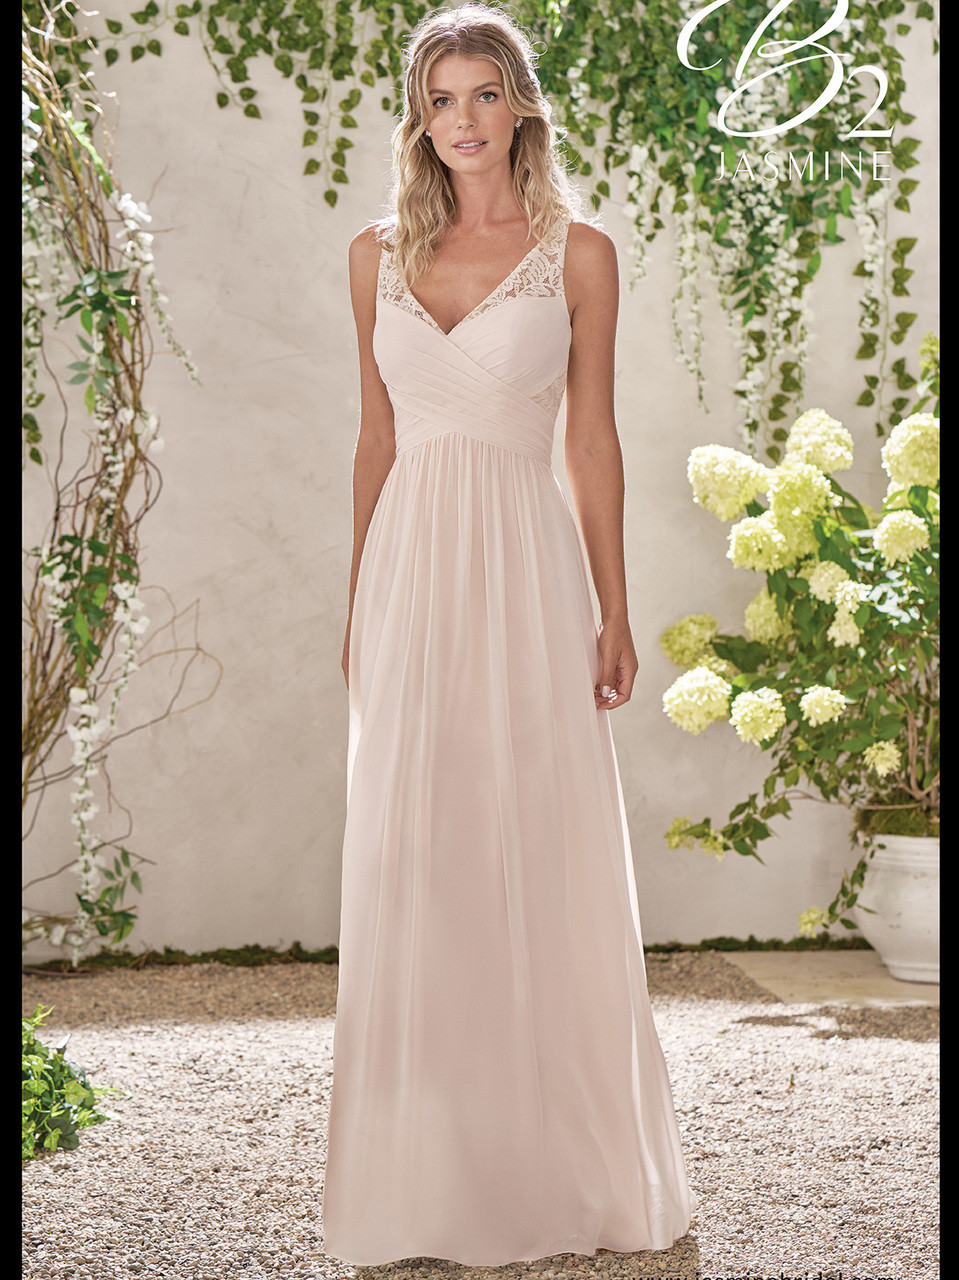 490e566e1a0 Jasmine B193001 V-neck A-line Bridesmaid Dress - DimitraDesigns.com